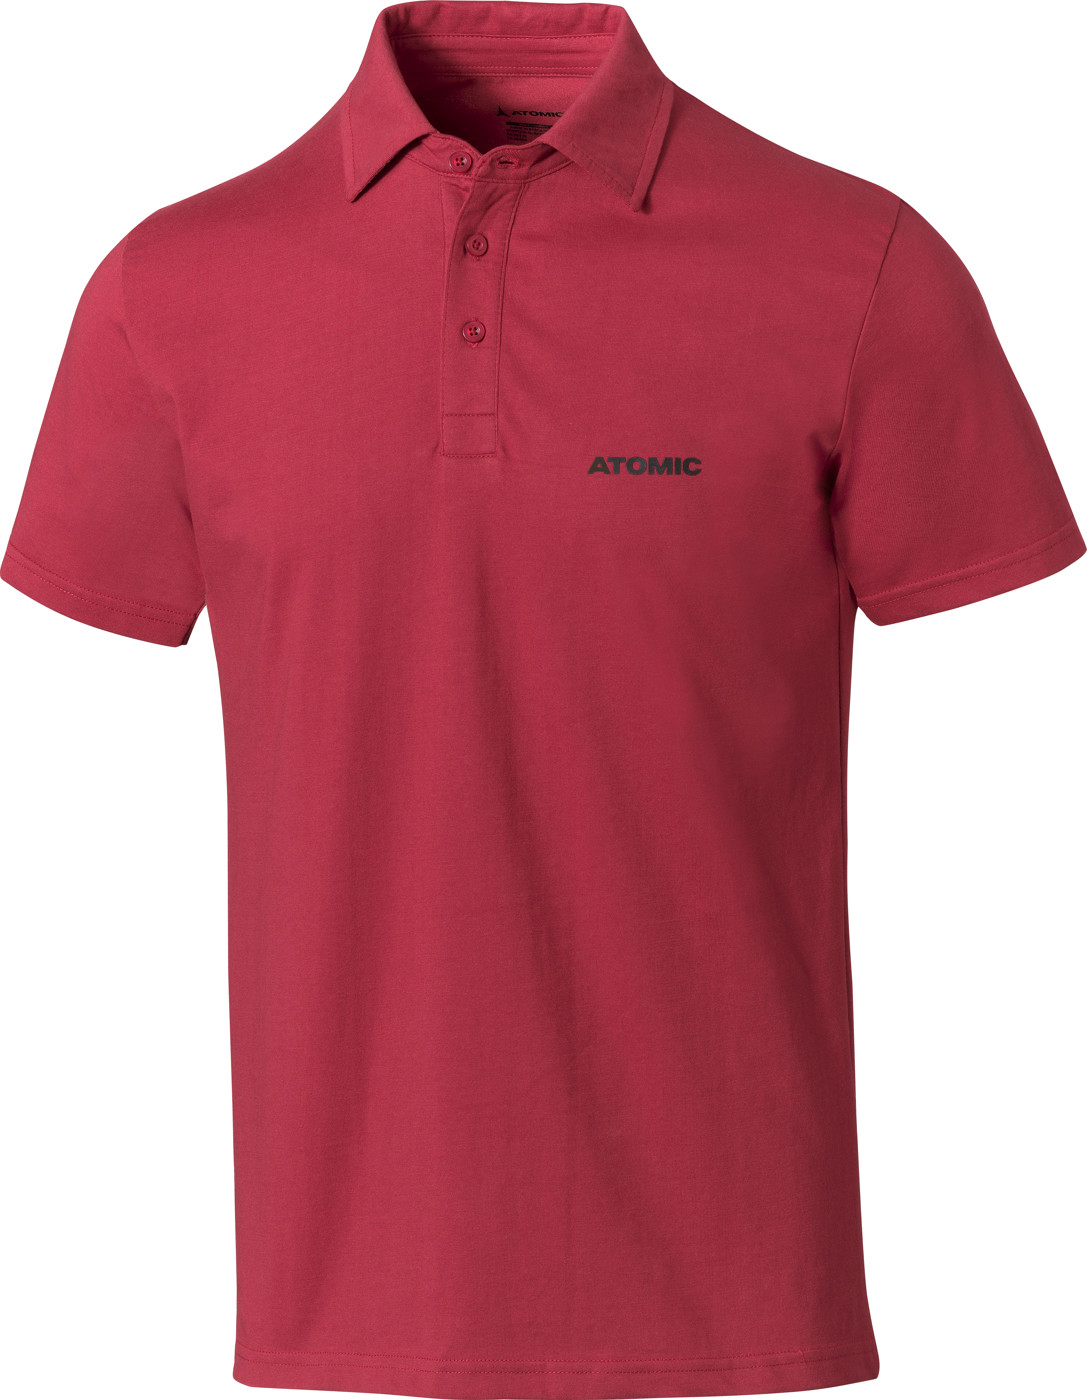 ATOMIC POLO-SHIRT Rio Red 2XL - Herren